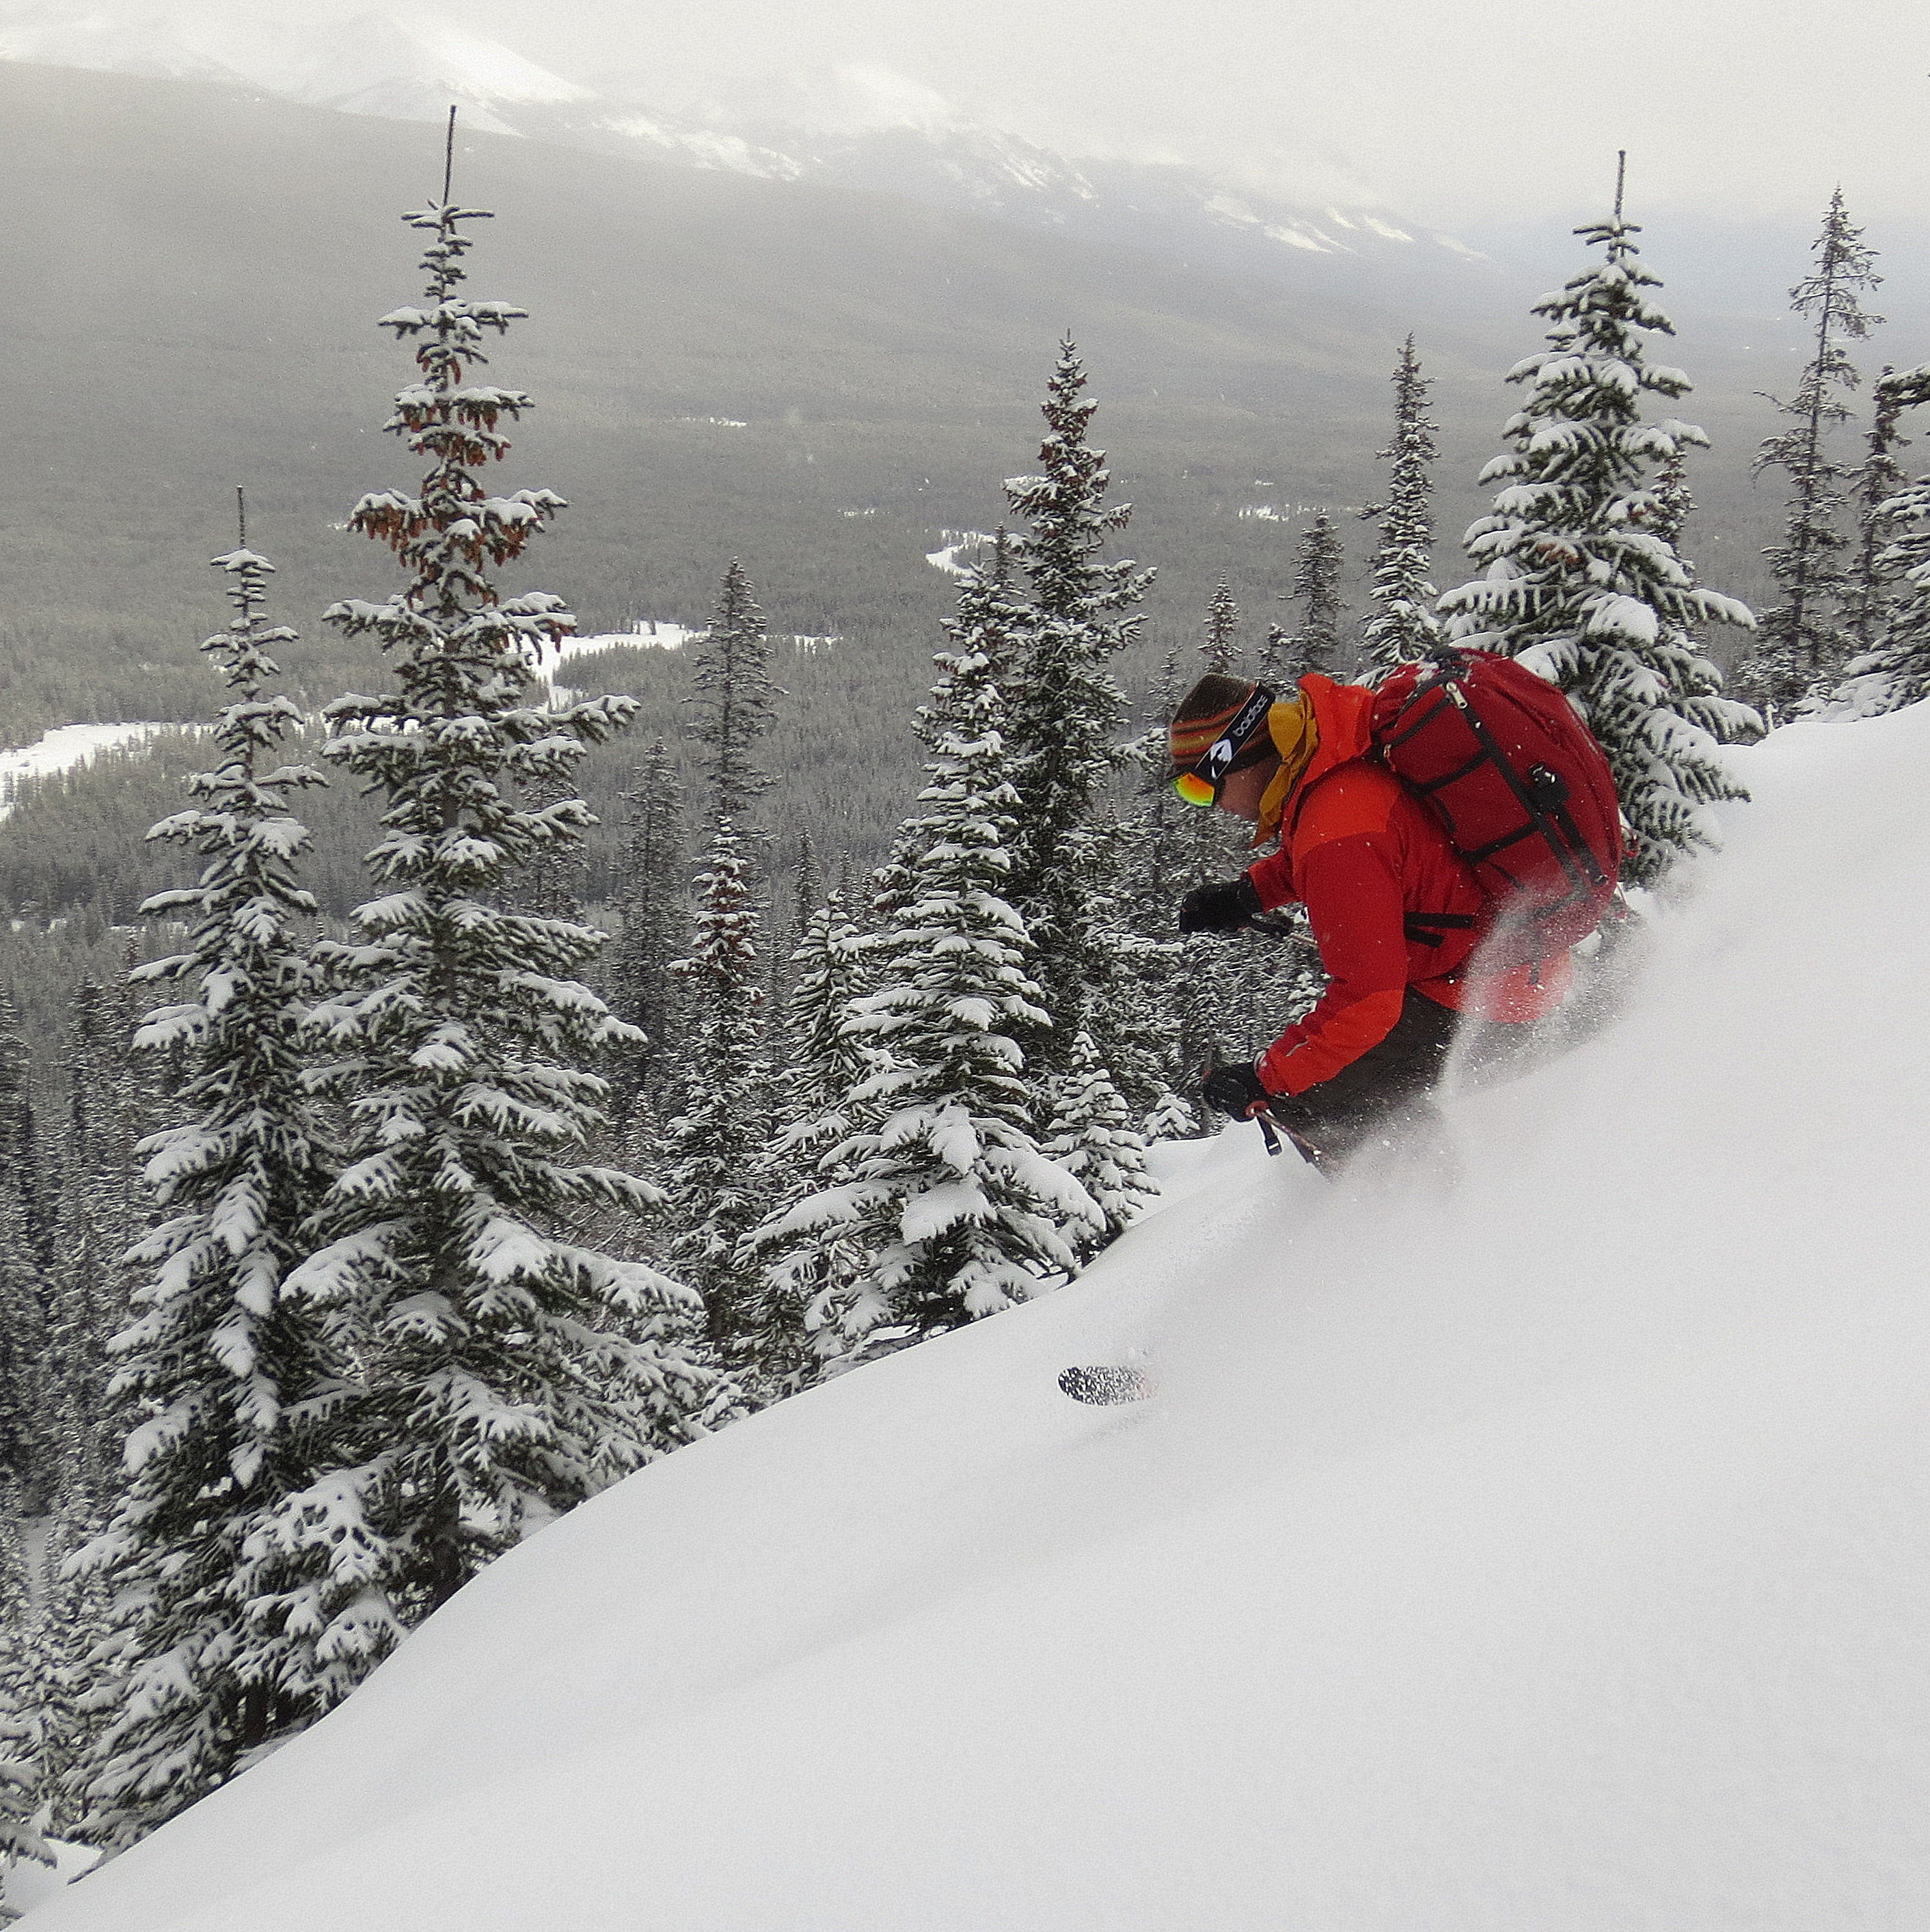 banff mountain guides our guides rh banffmountainguides com Klassen Name Klassen Wheels